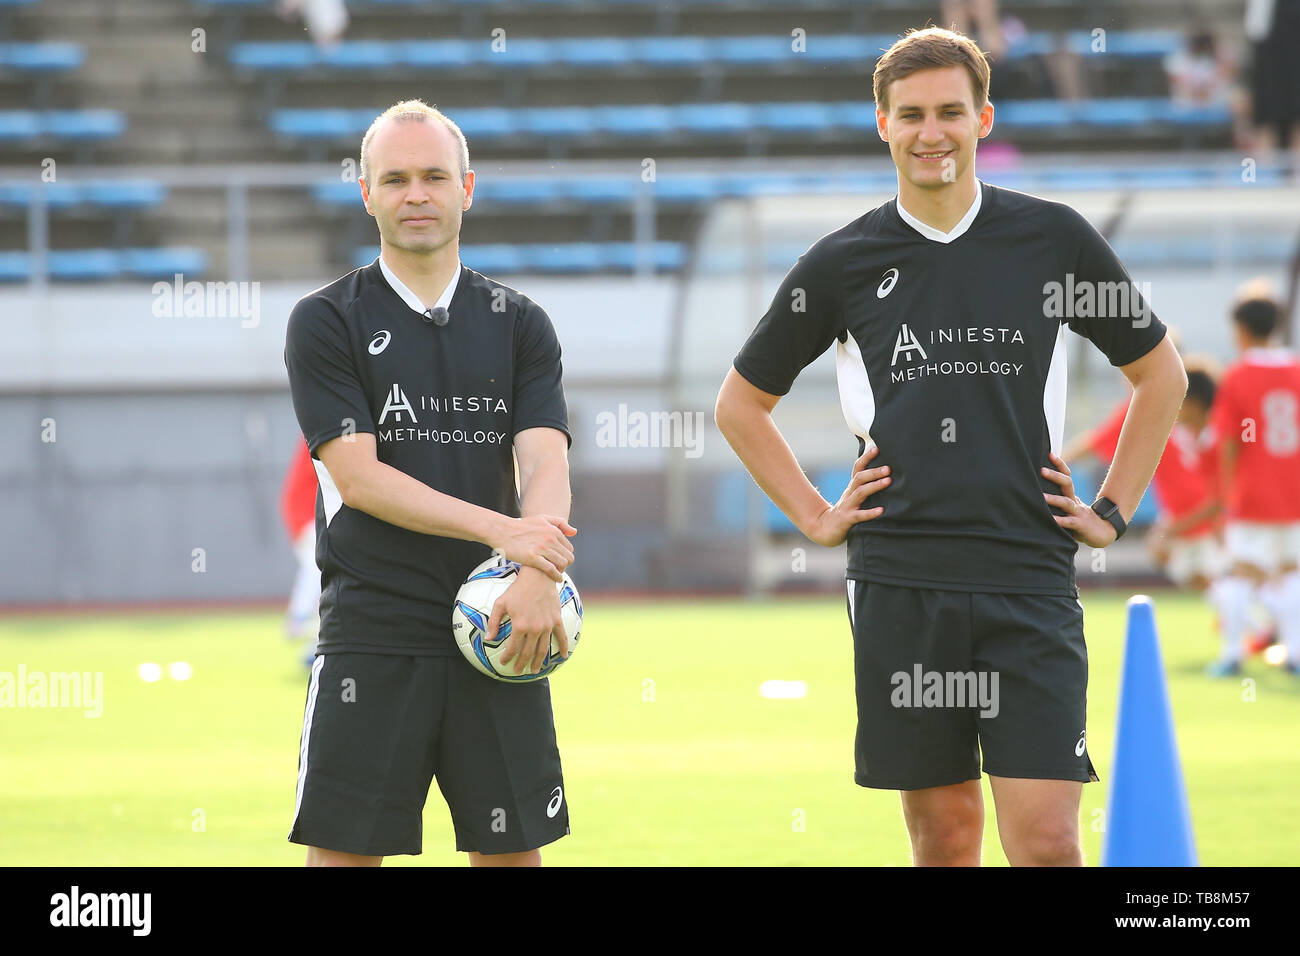 Andres Iniesta of Vissel Kobe attends his football academy 'Iniesta's Methodology' event in Sakai, Osaka, Japan on May 29, 2019. Credit: Pasya/AFLO/Alamy Live News - Stock Image